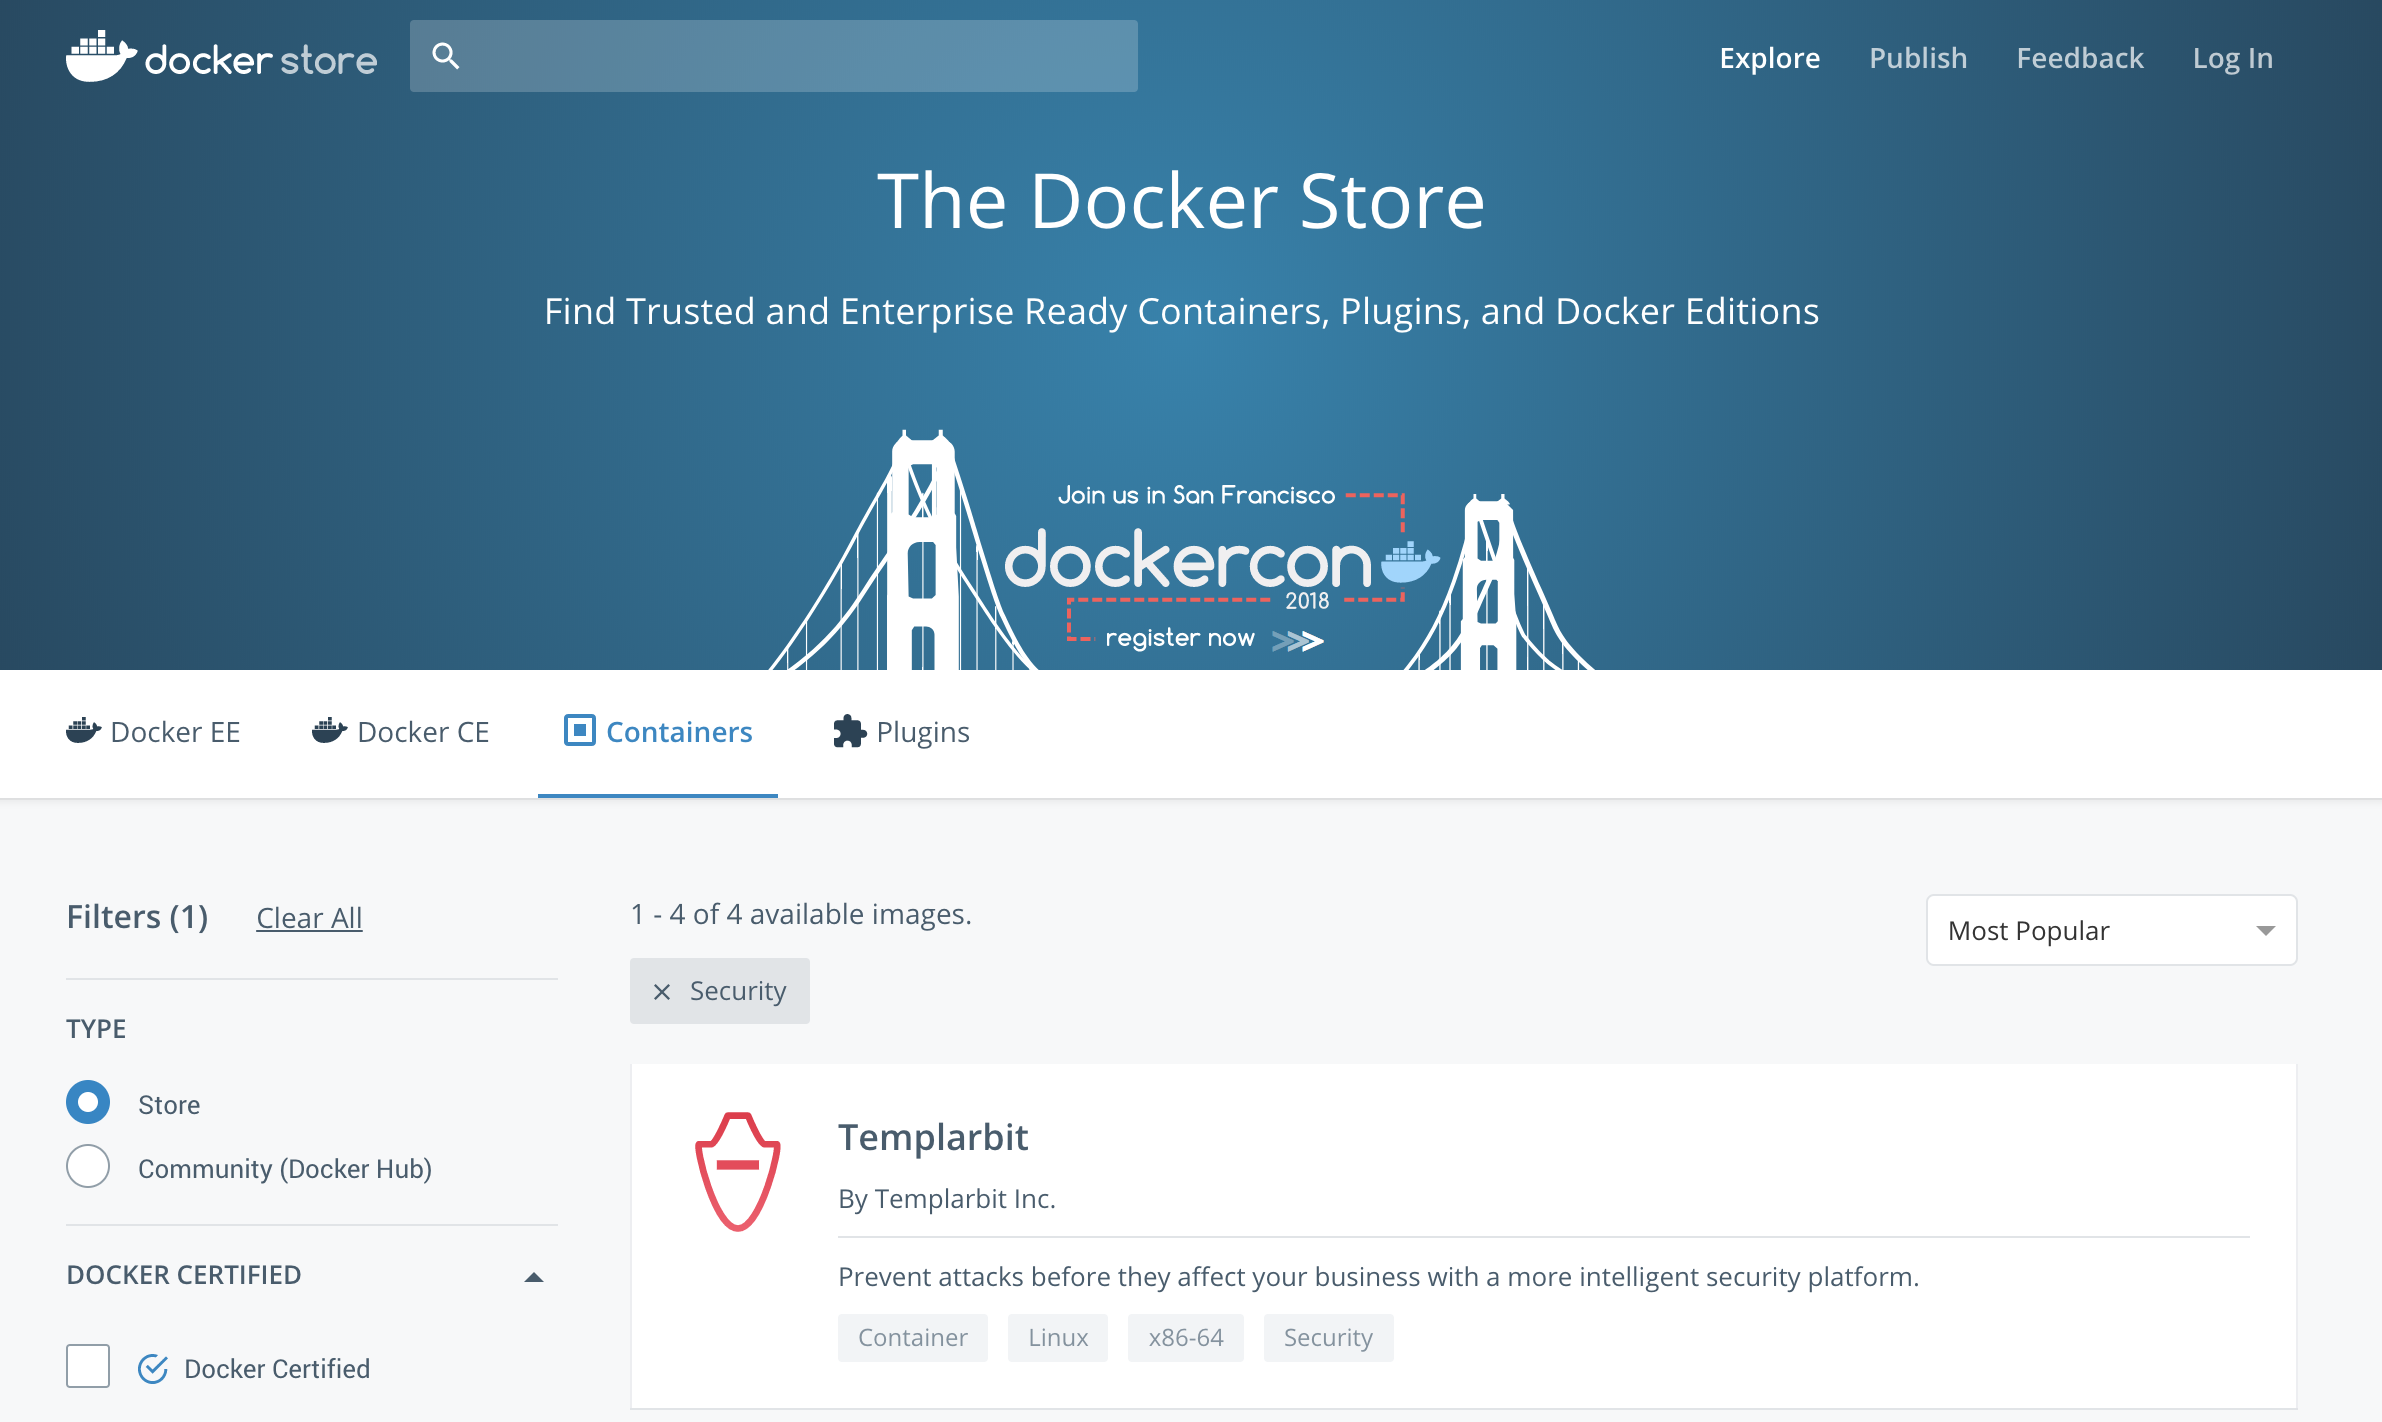 Where to find Templarbit in the Docker Store